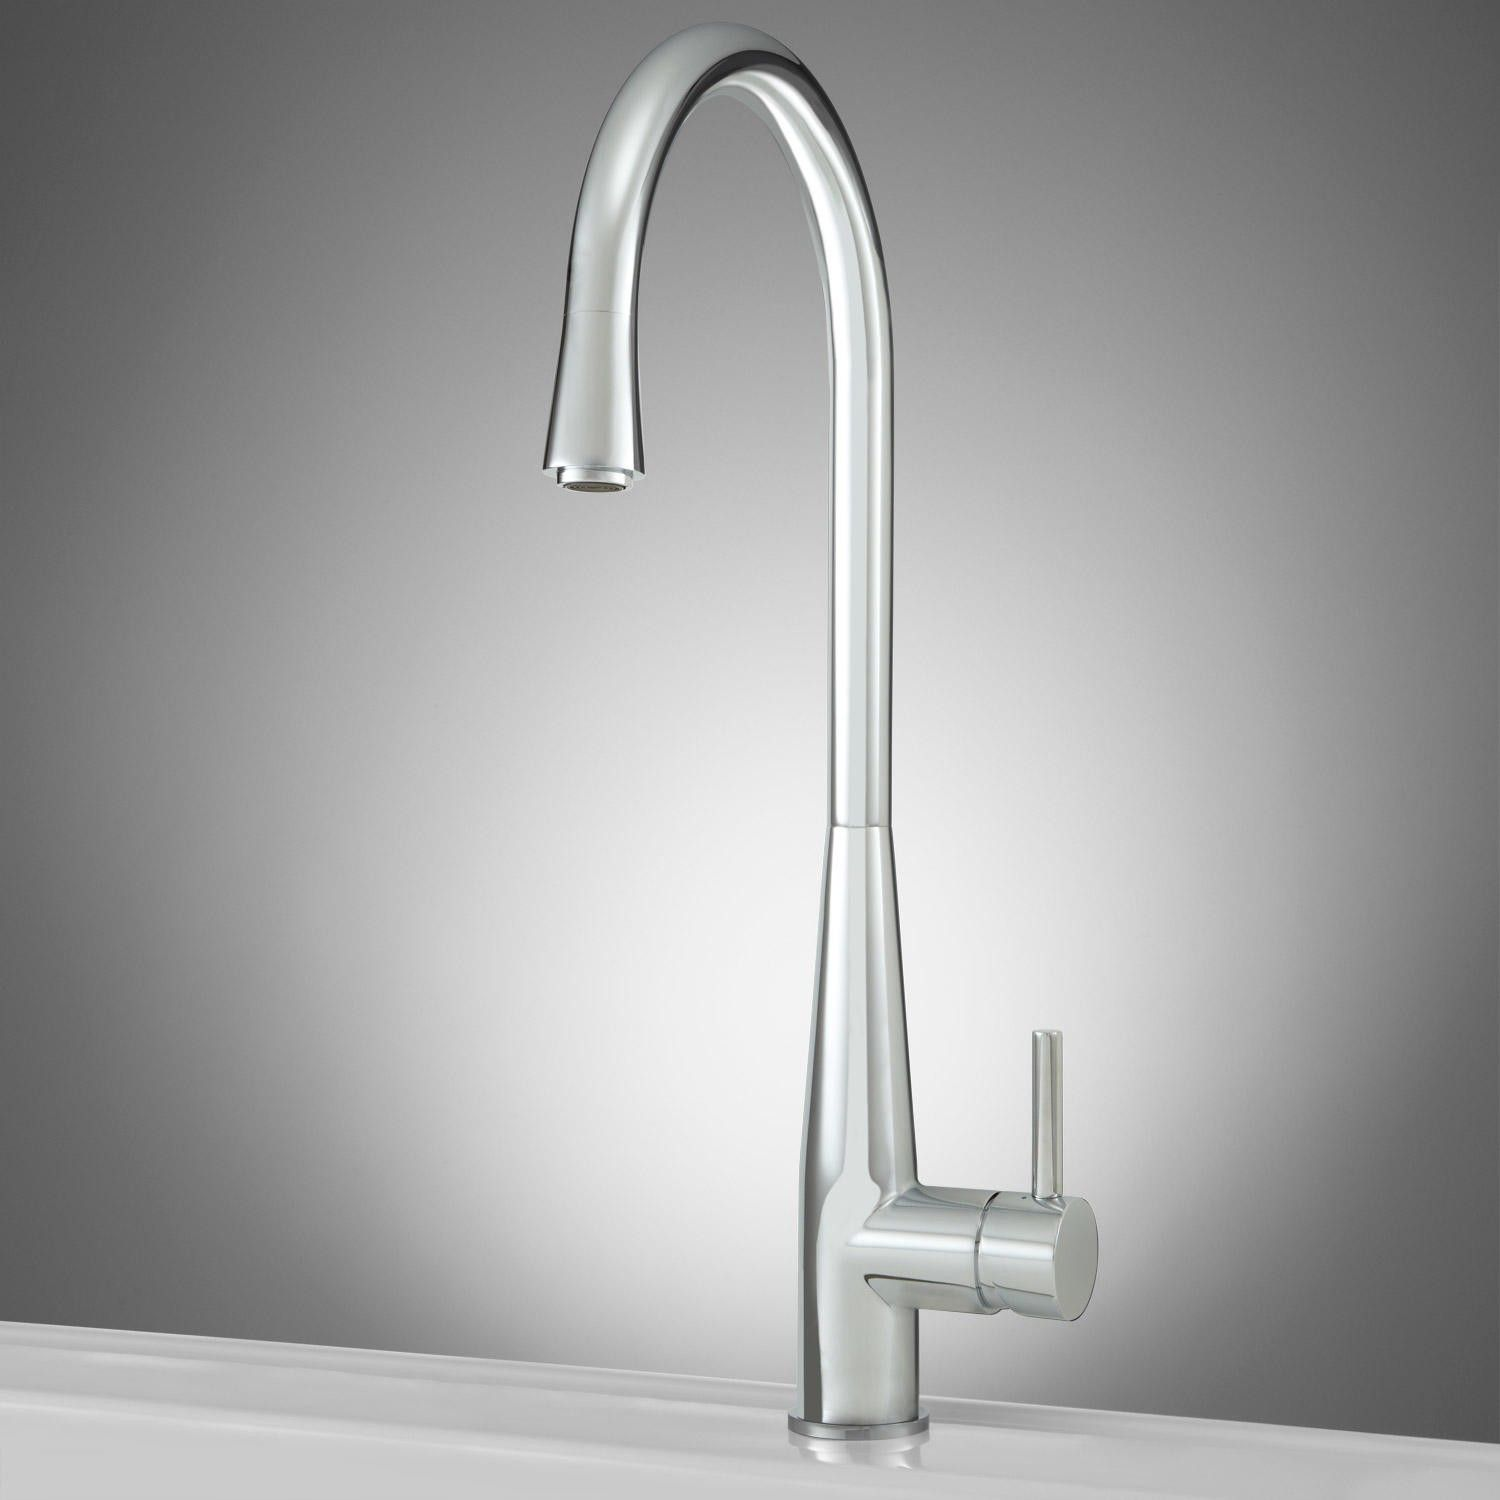 Allure Faucet in Brushed Nickel Finish